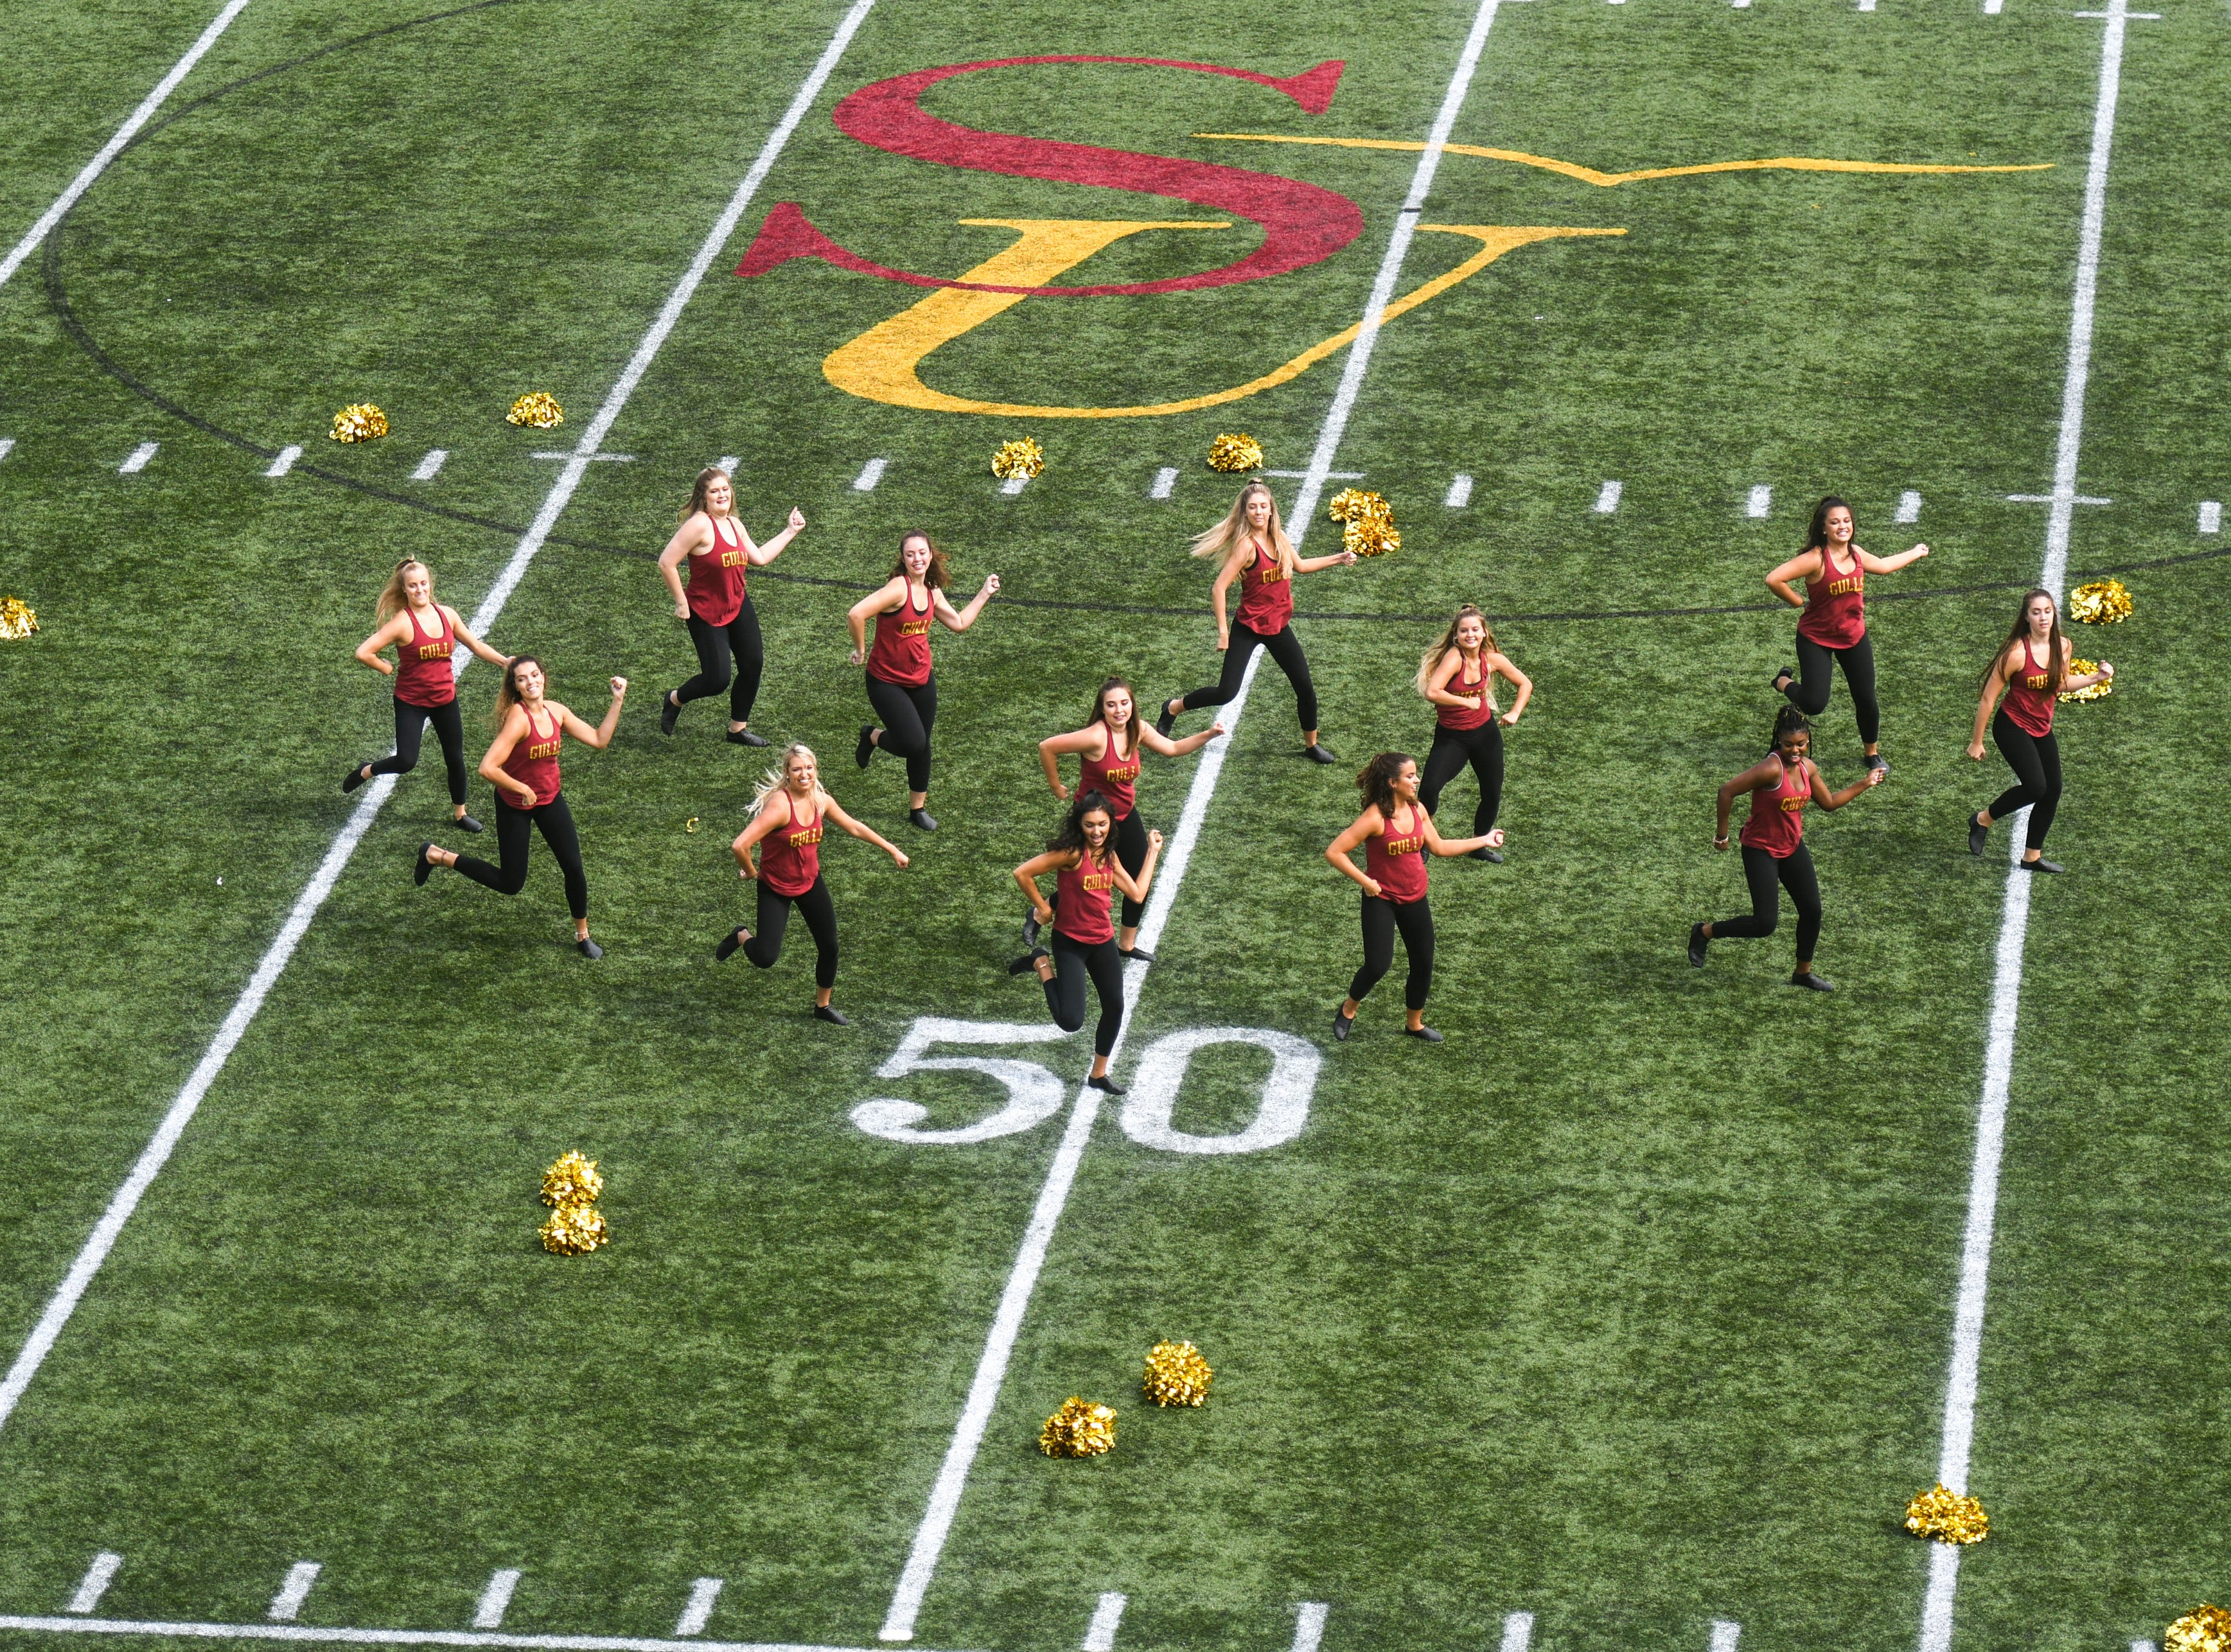 Salisbury University's dance team performs a halftime show at their game against Kean on Saturday, Sept 15, 2018 at Seagull Stadium.